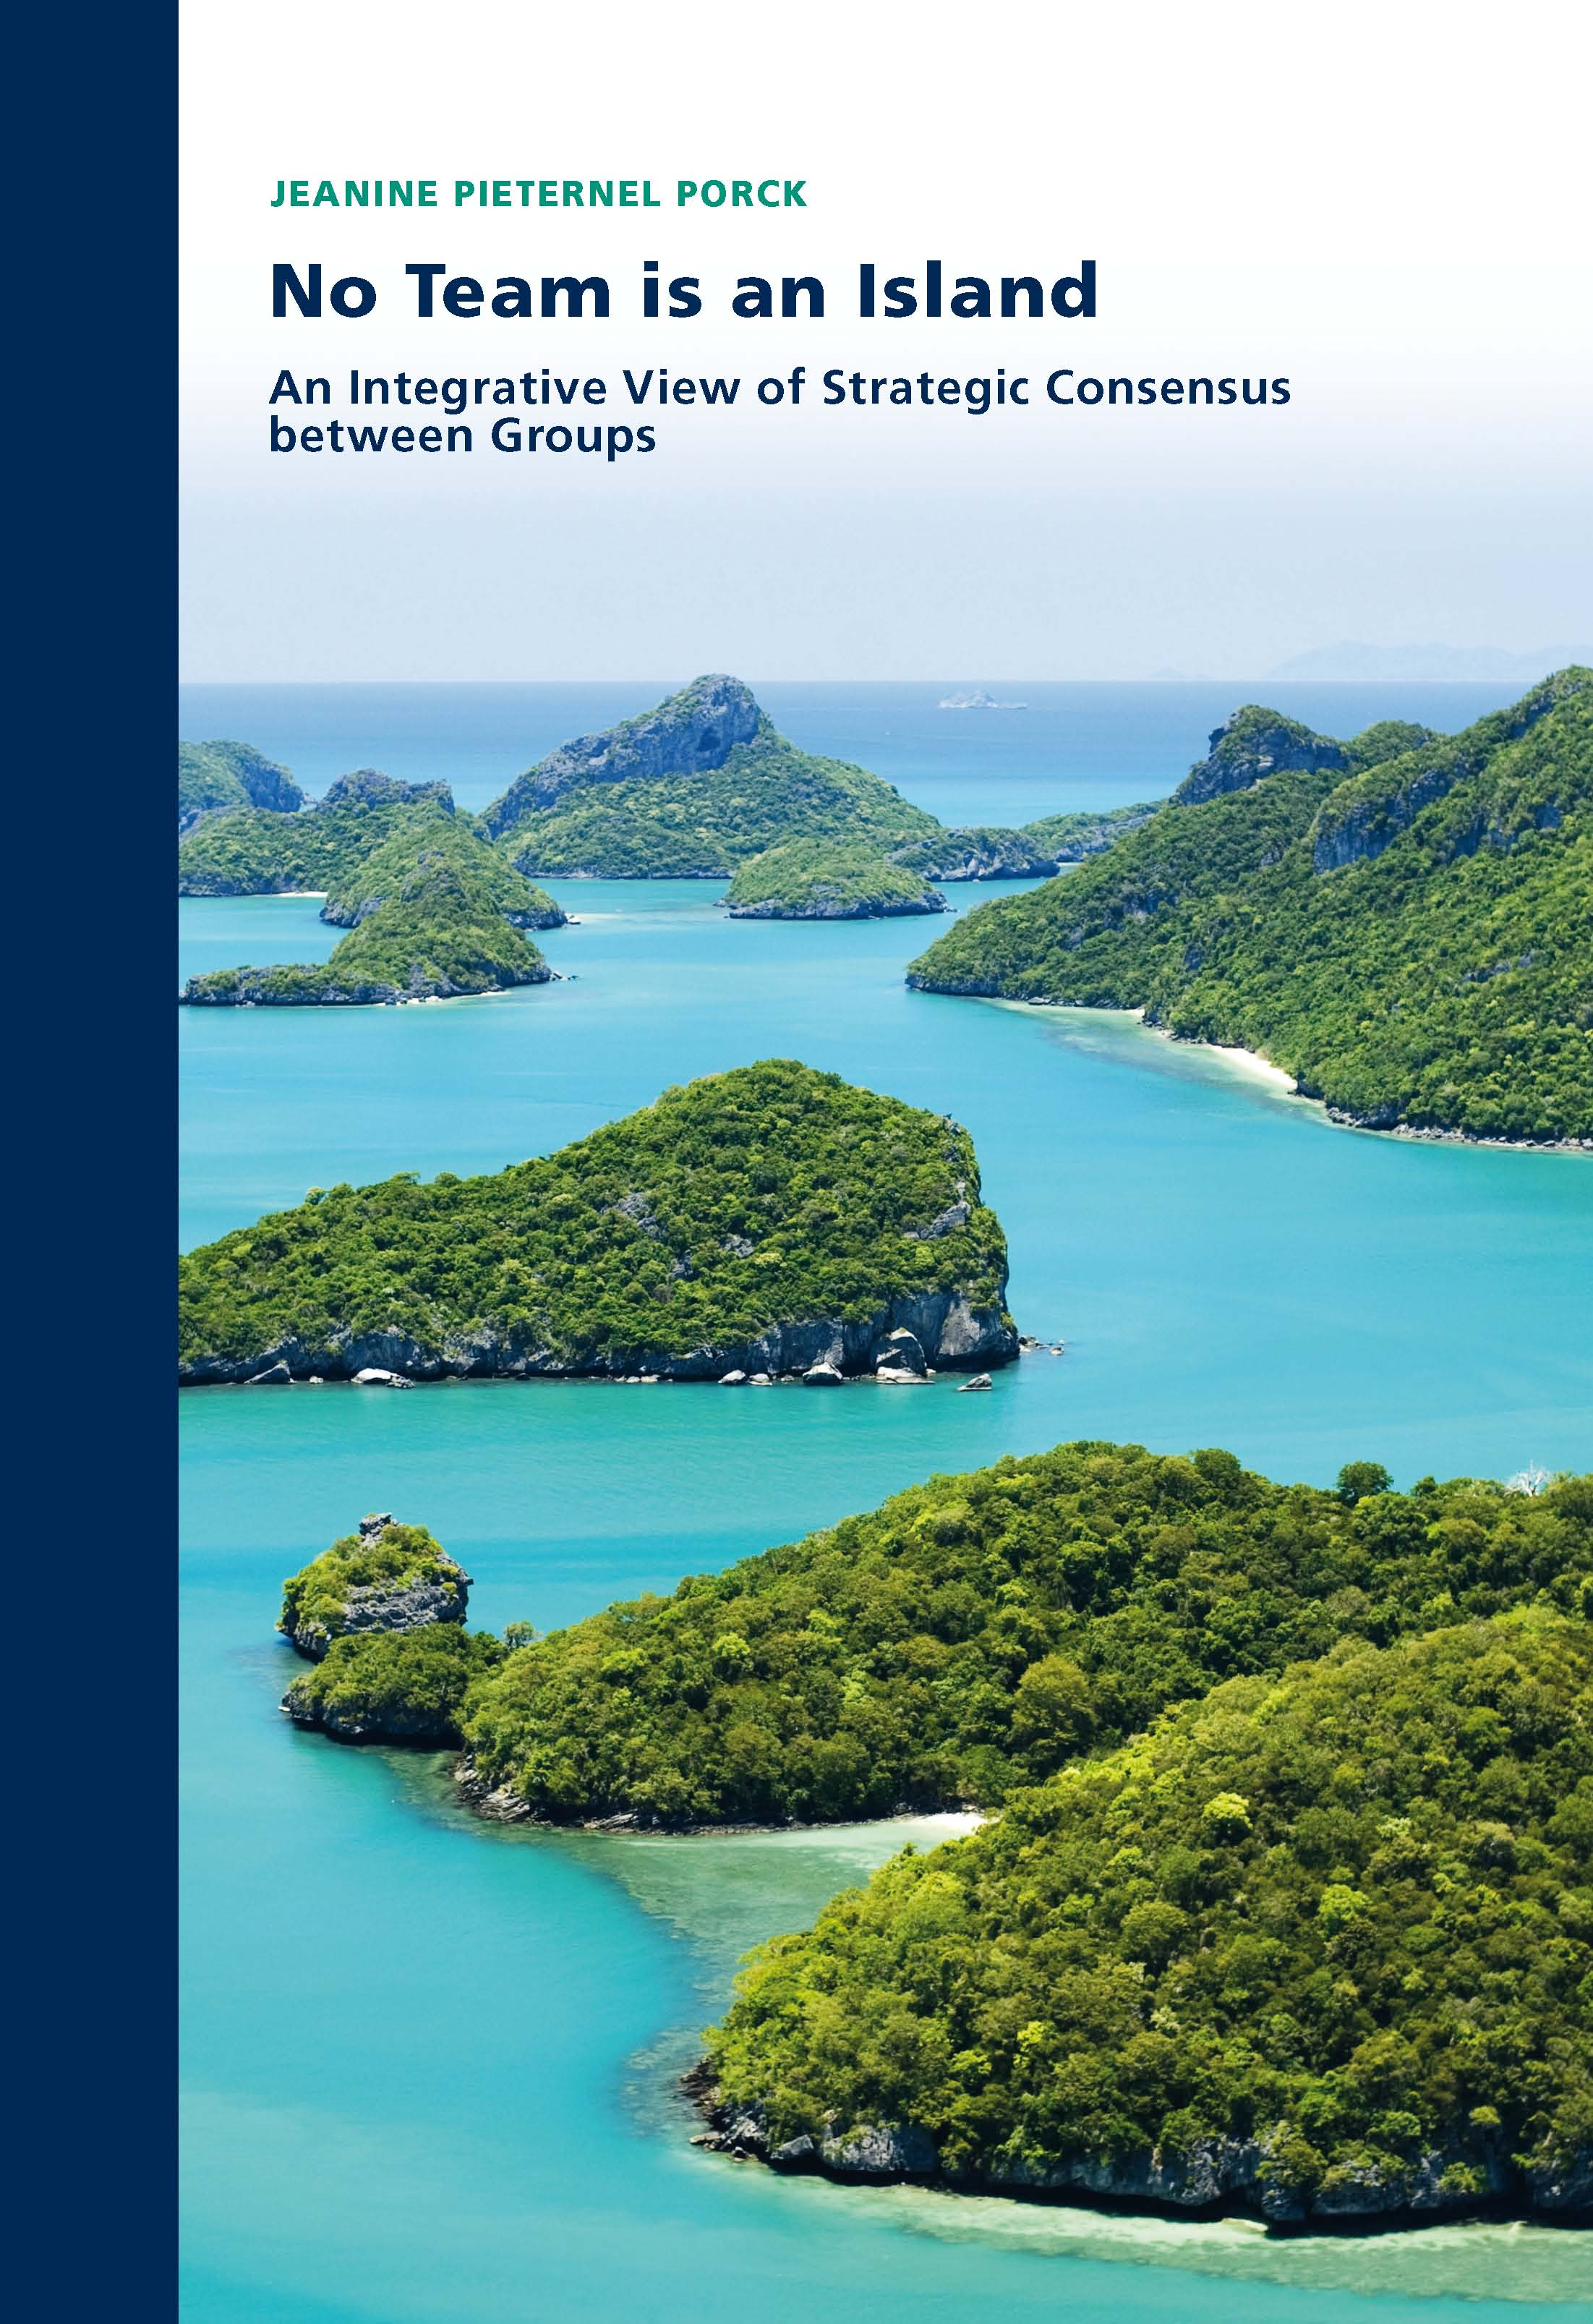 No Team is an Island: an Integrative View of Strategic Consensus between Groups